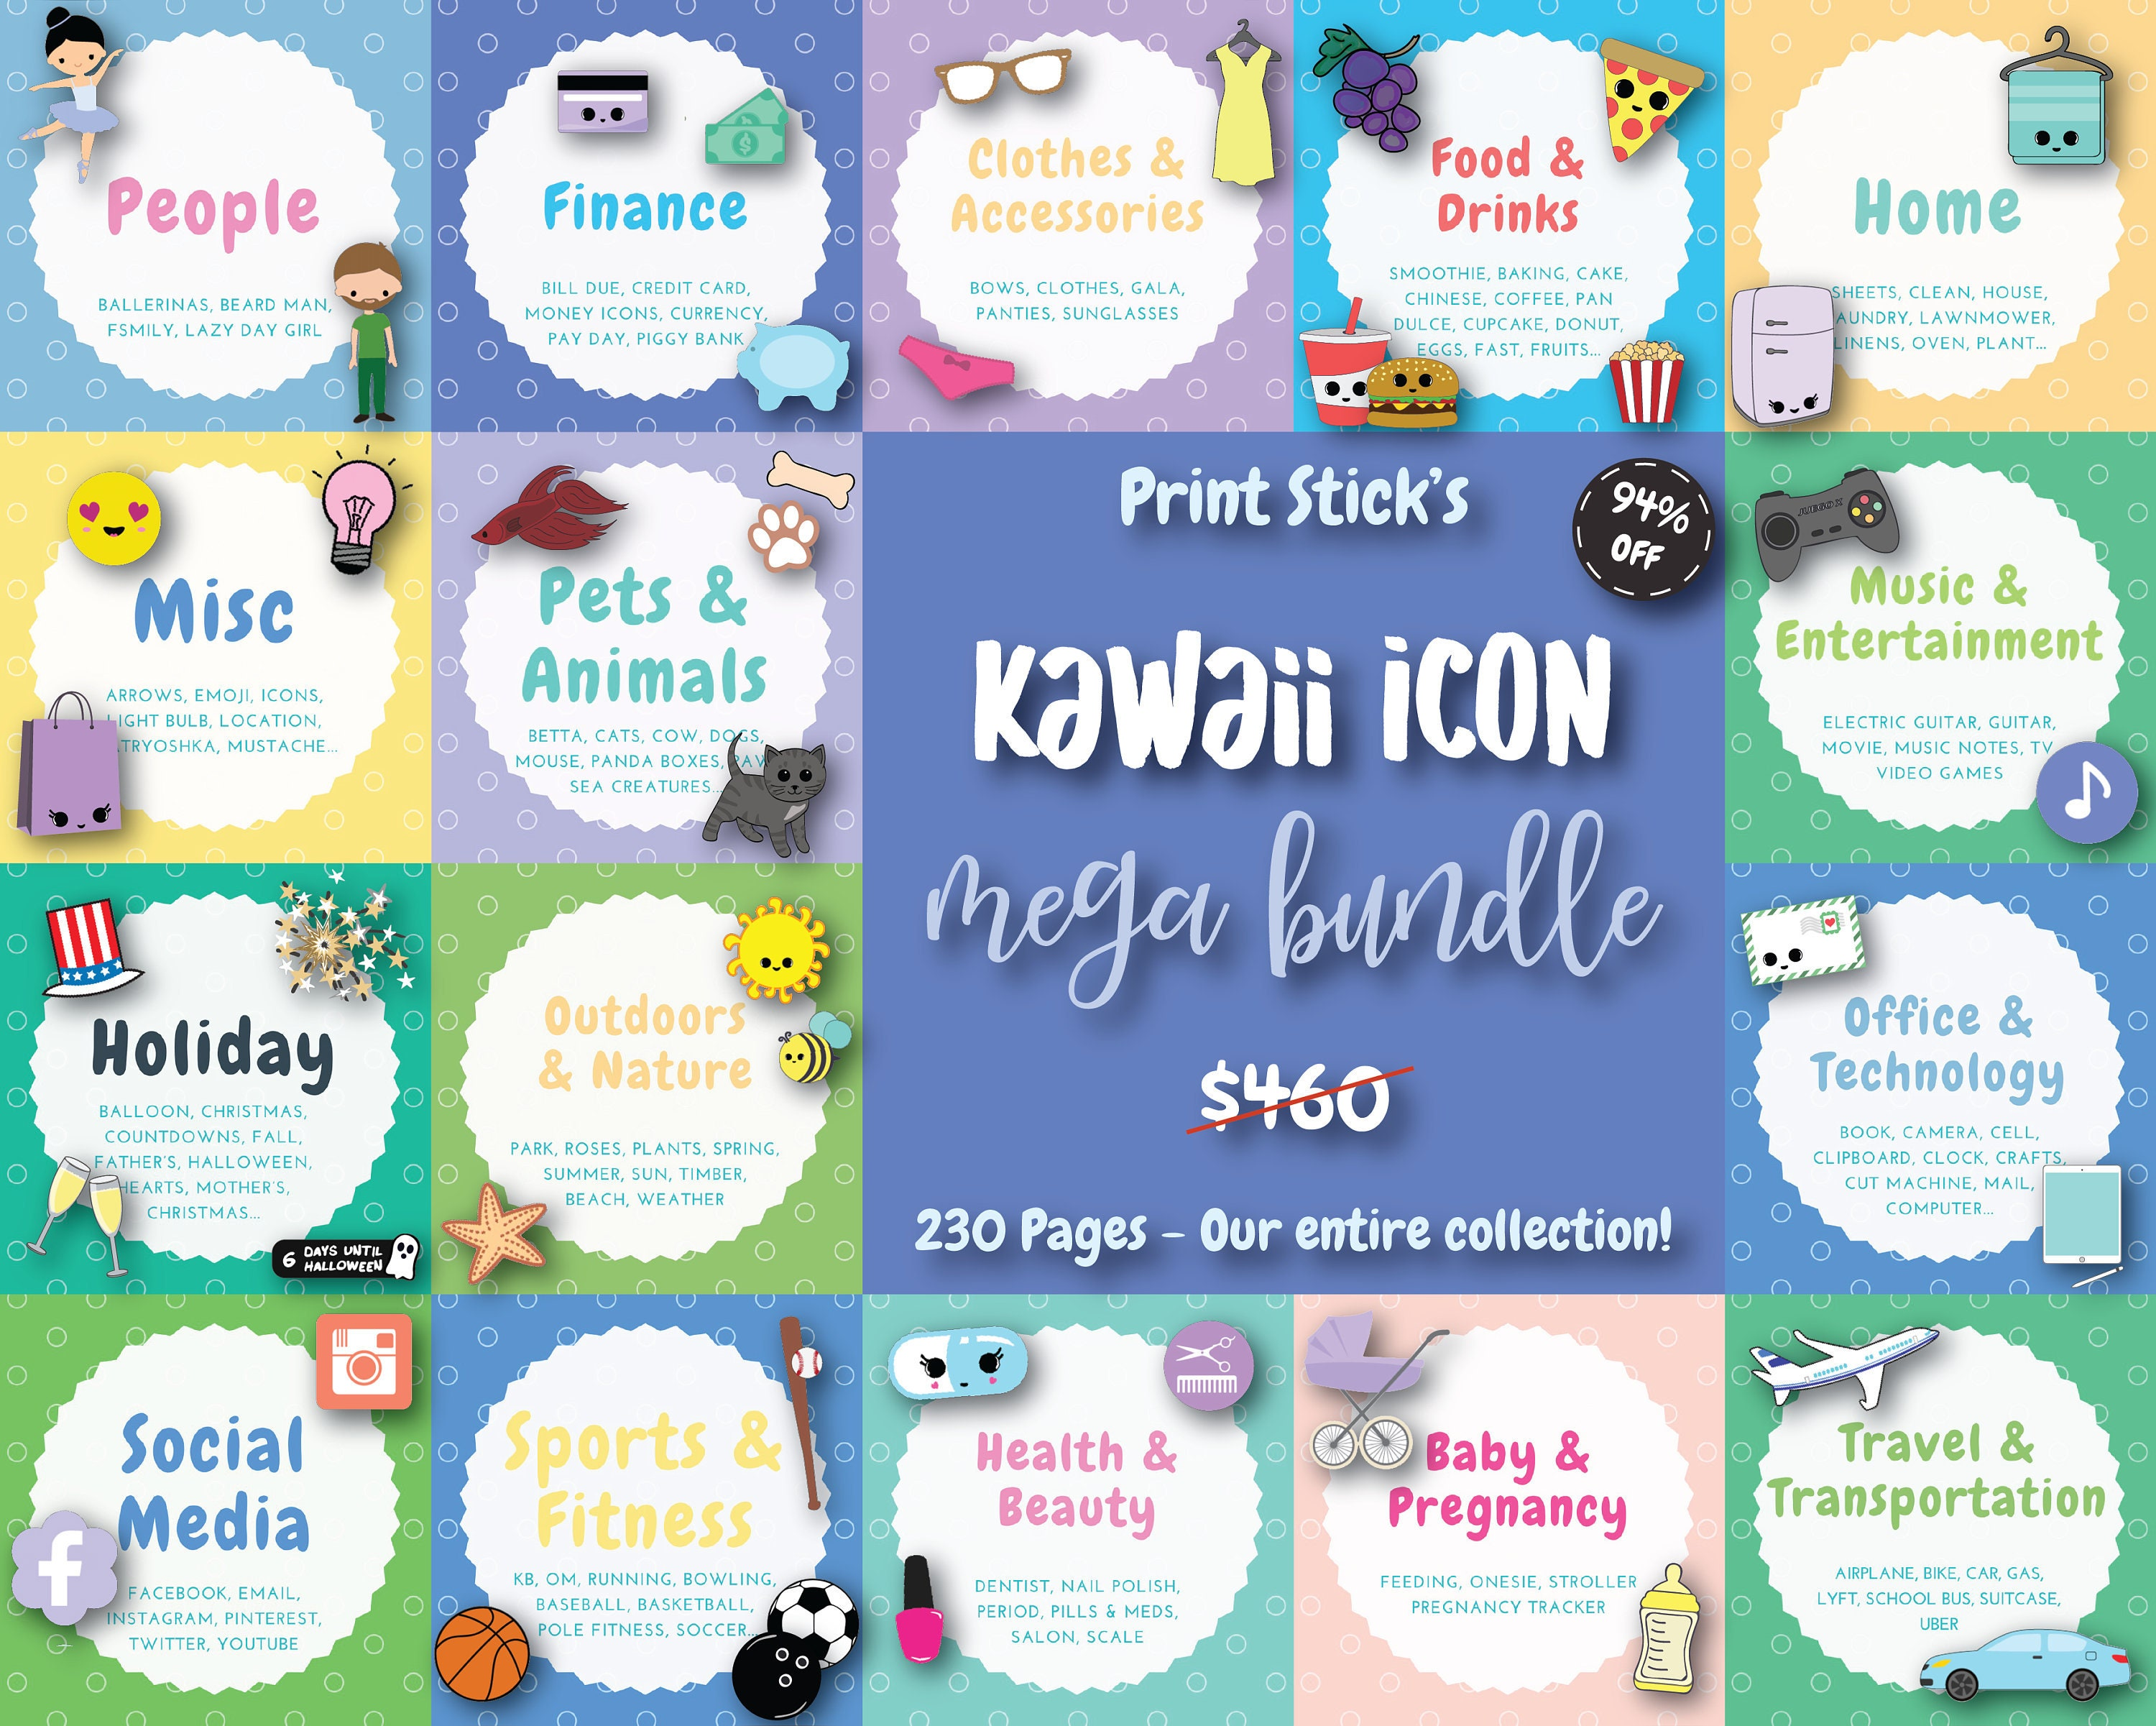 graphic about Printable Planner Stickers referred to as Printable Planner Stickers Kawaii Printable Package deal Lovable Stickers PDF Stickers Printable Stickers Joyful Planner Erin Condren - 230 Web pages!